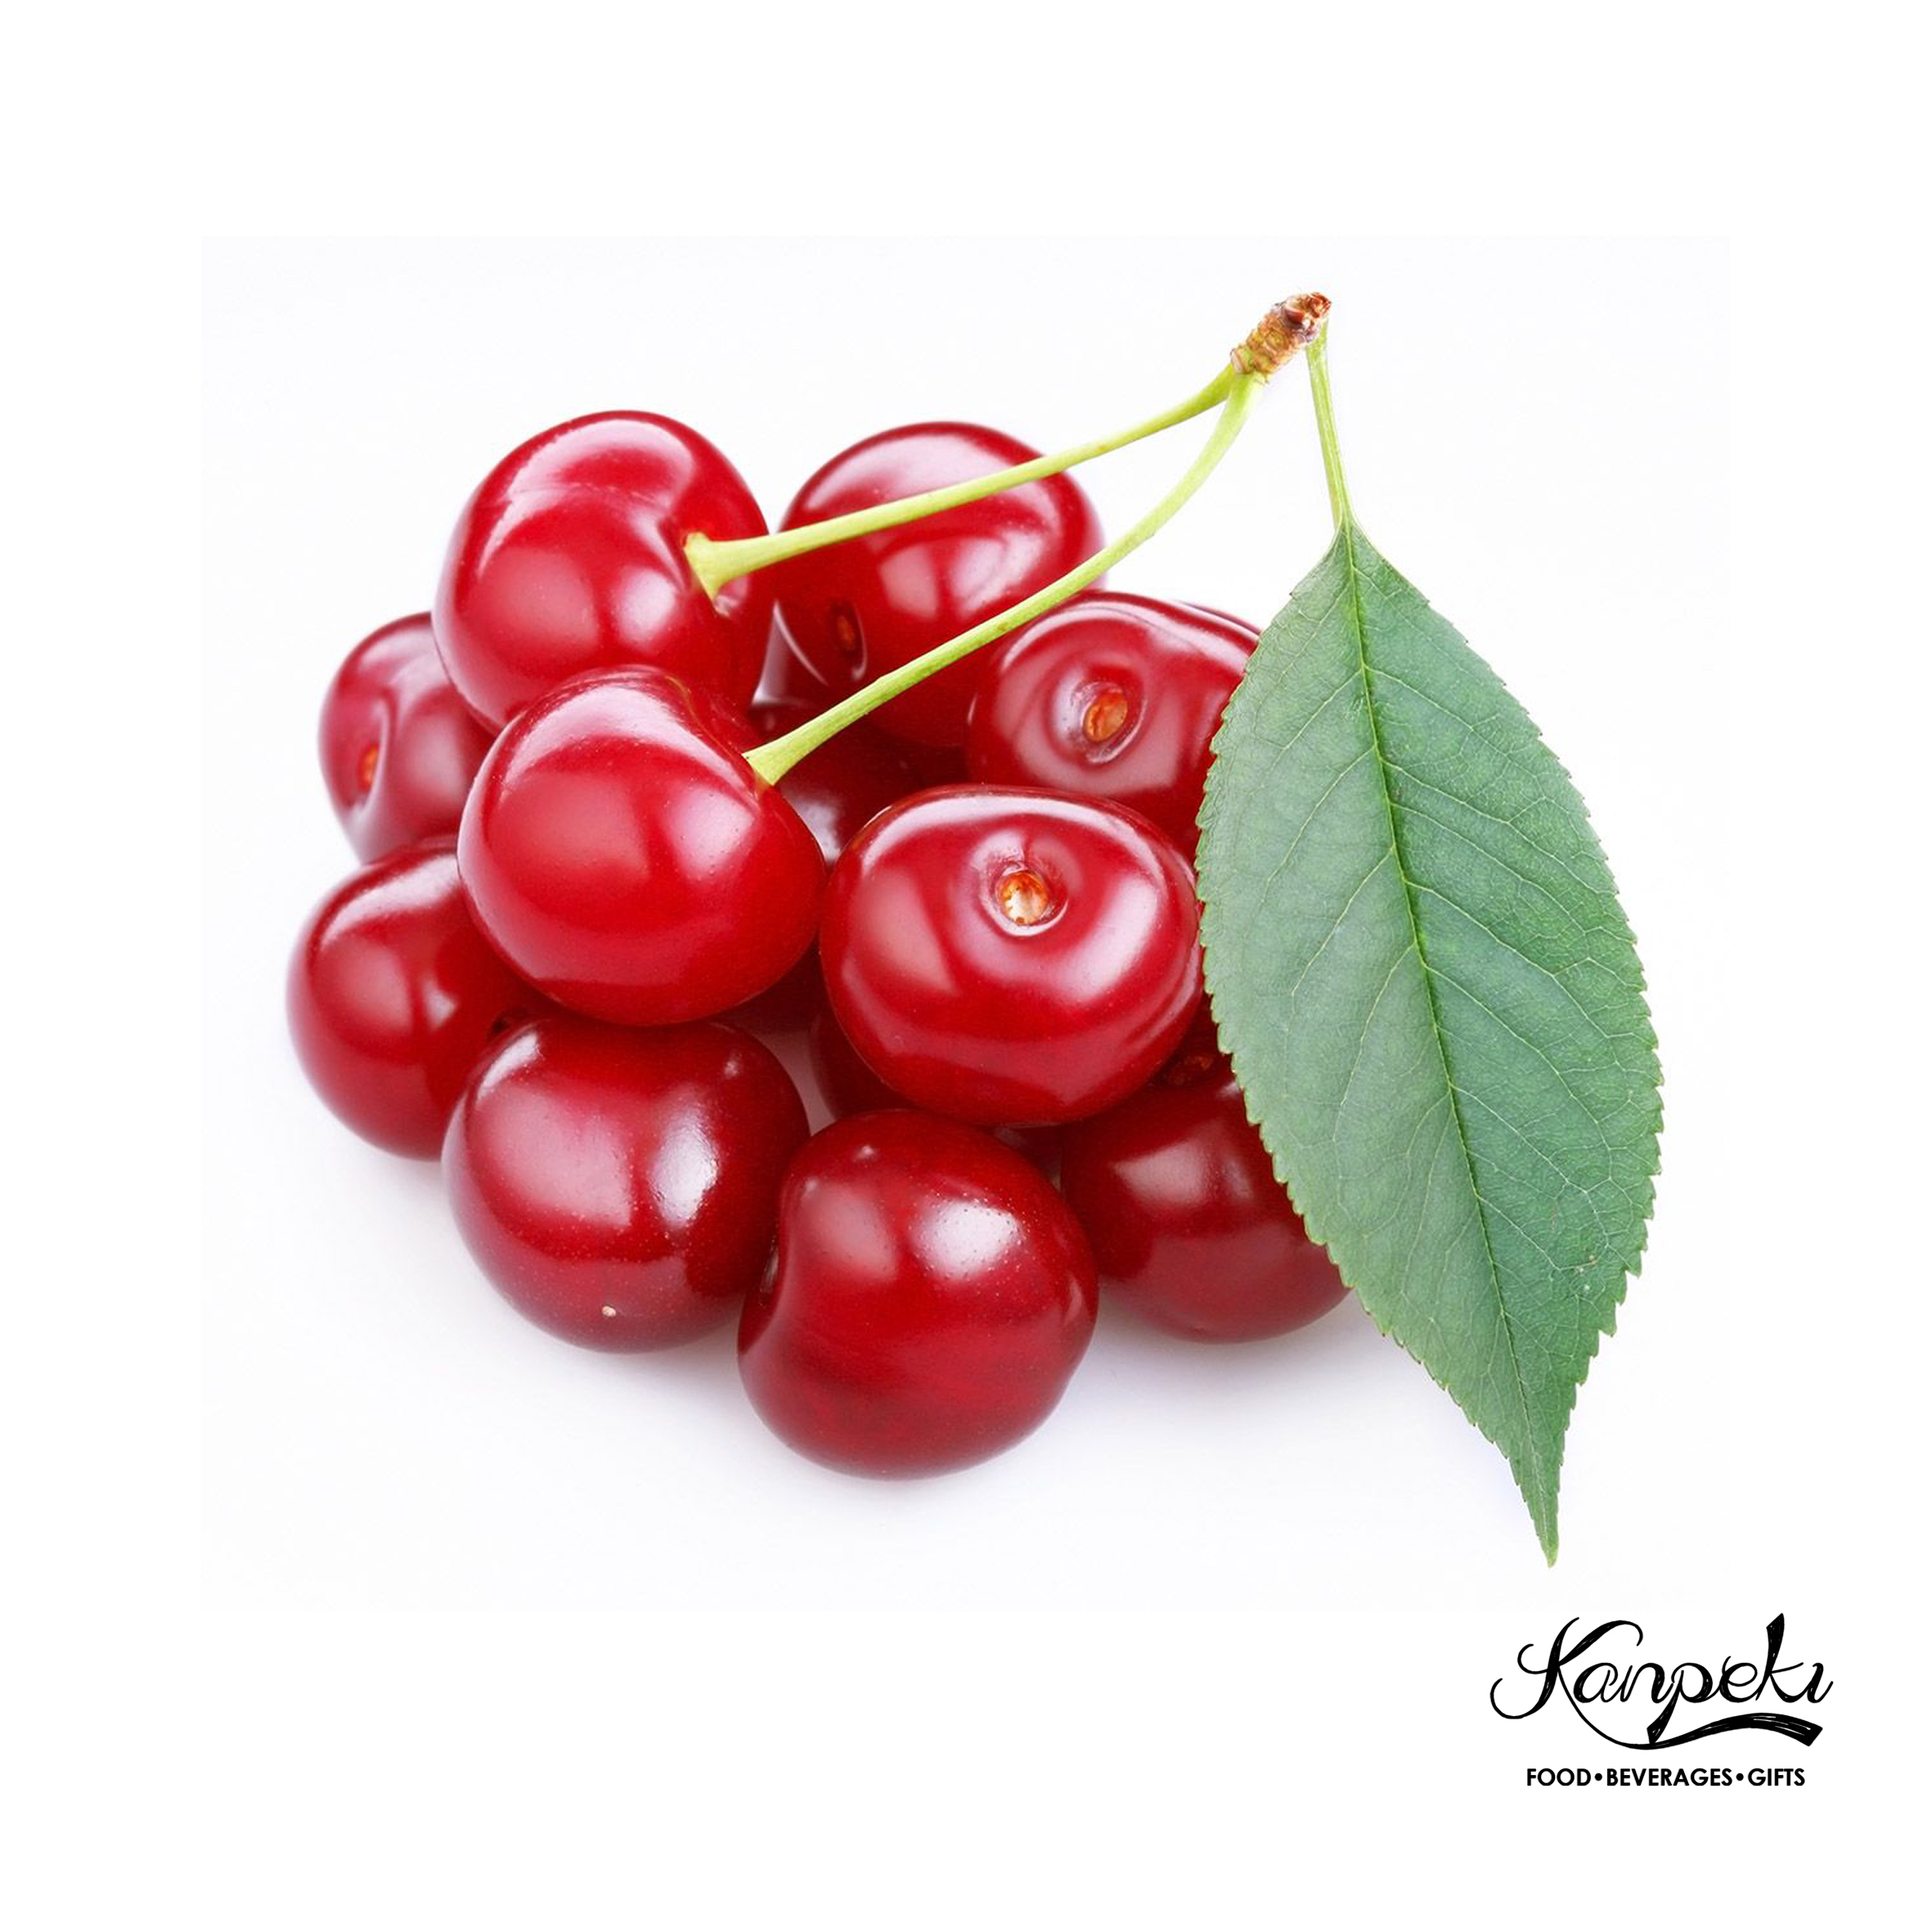 Kanpeki Acelora Cherry Drinks 100 Fruit Juice Picture.jpg